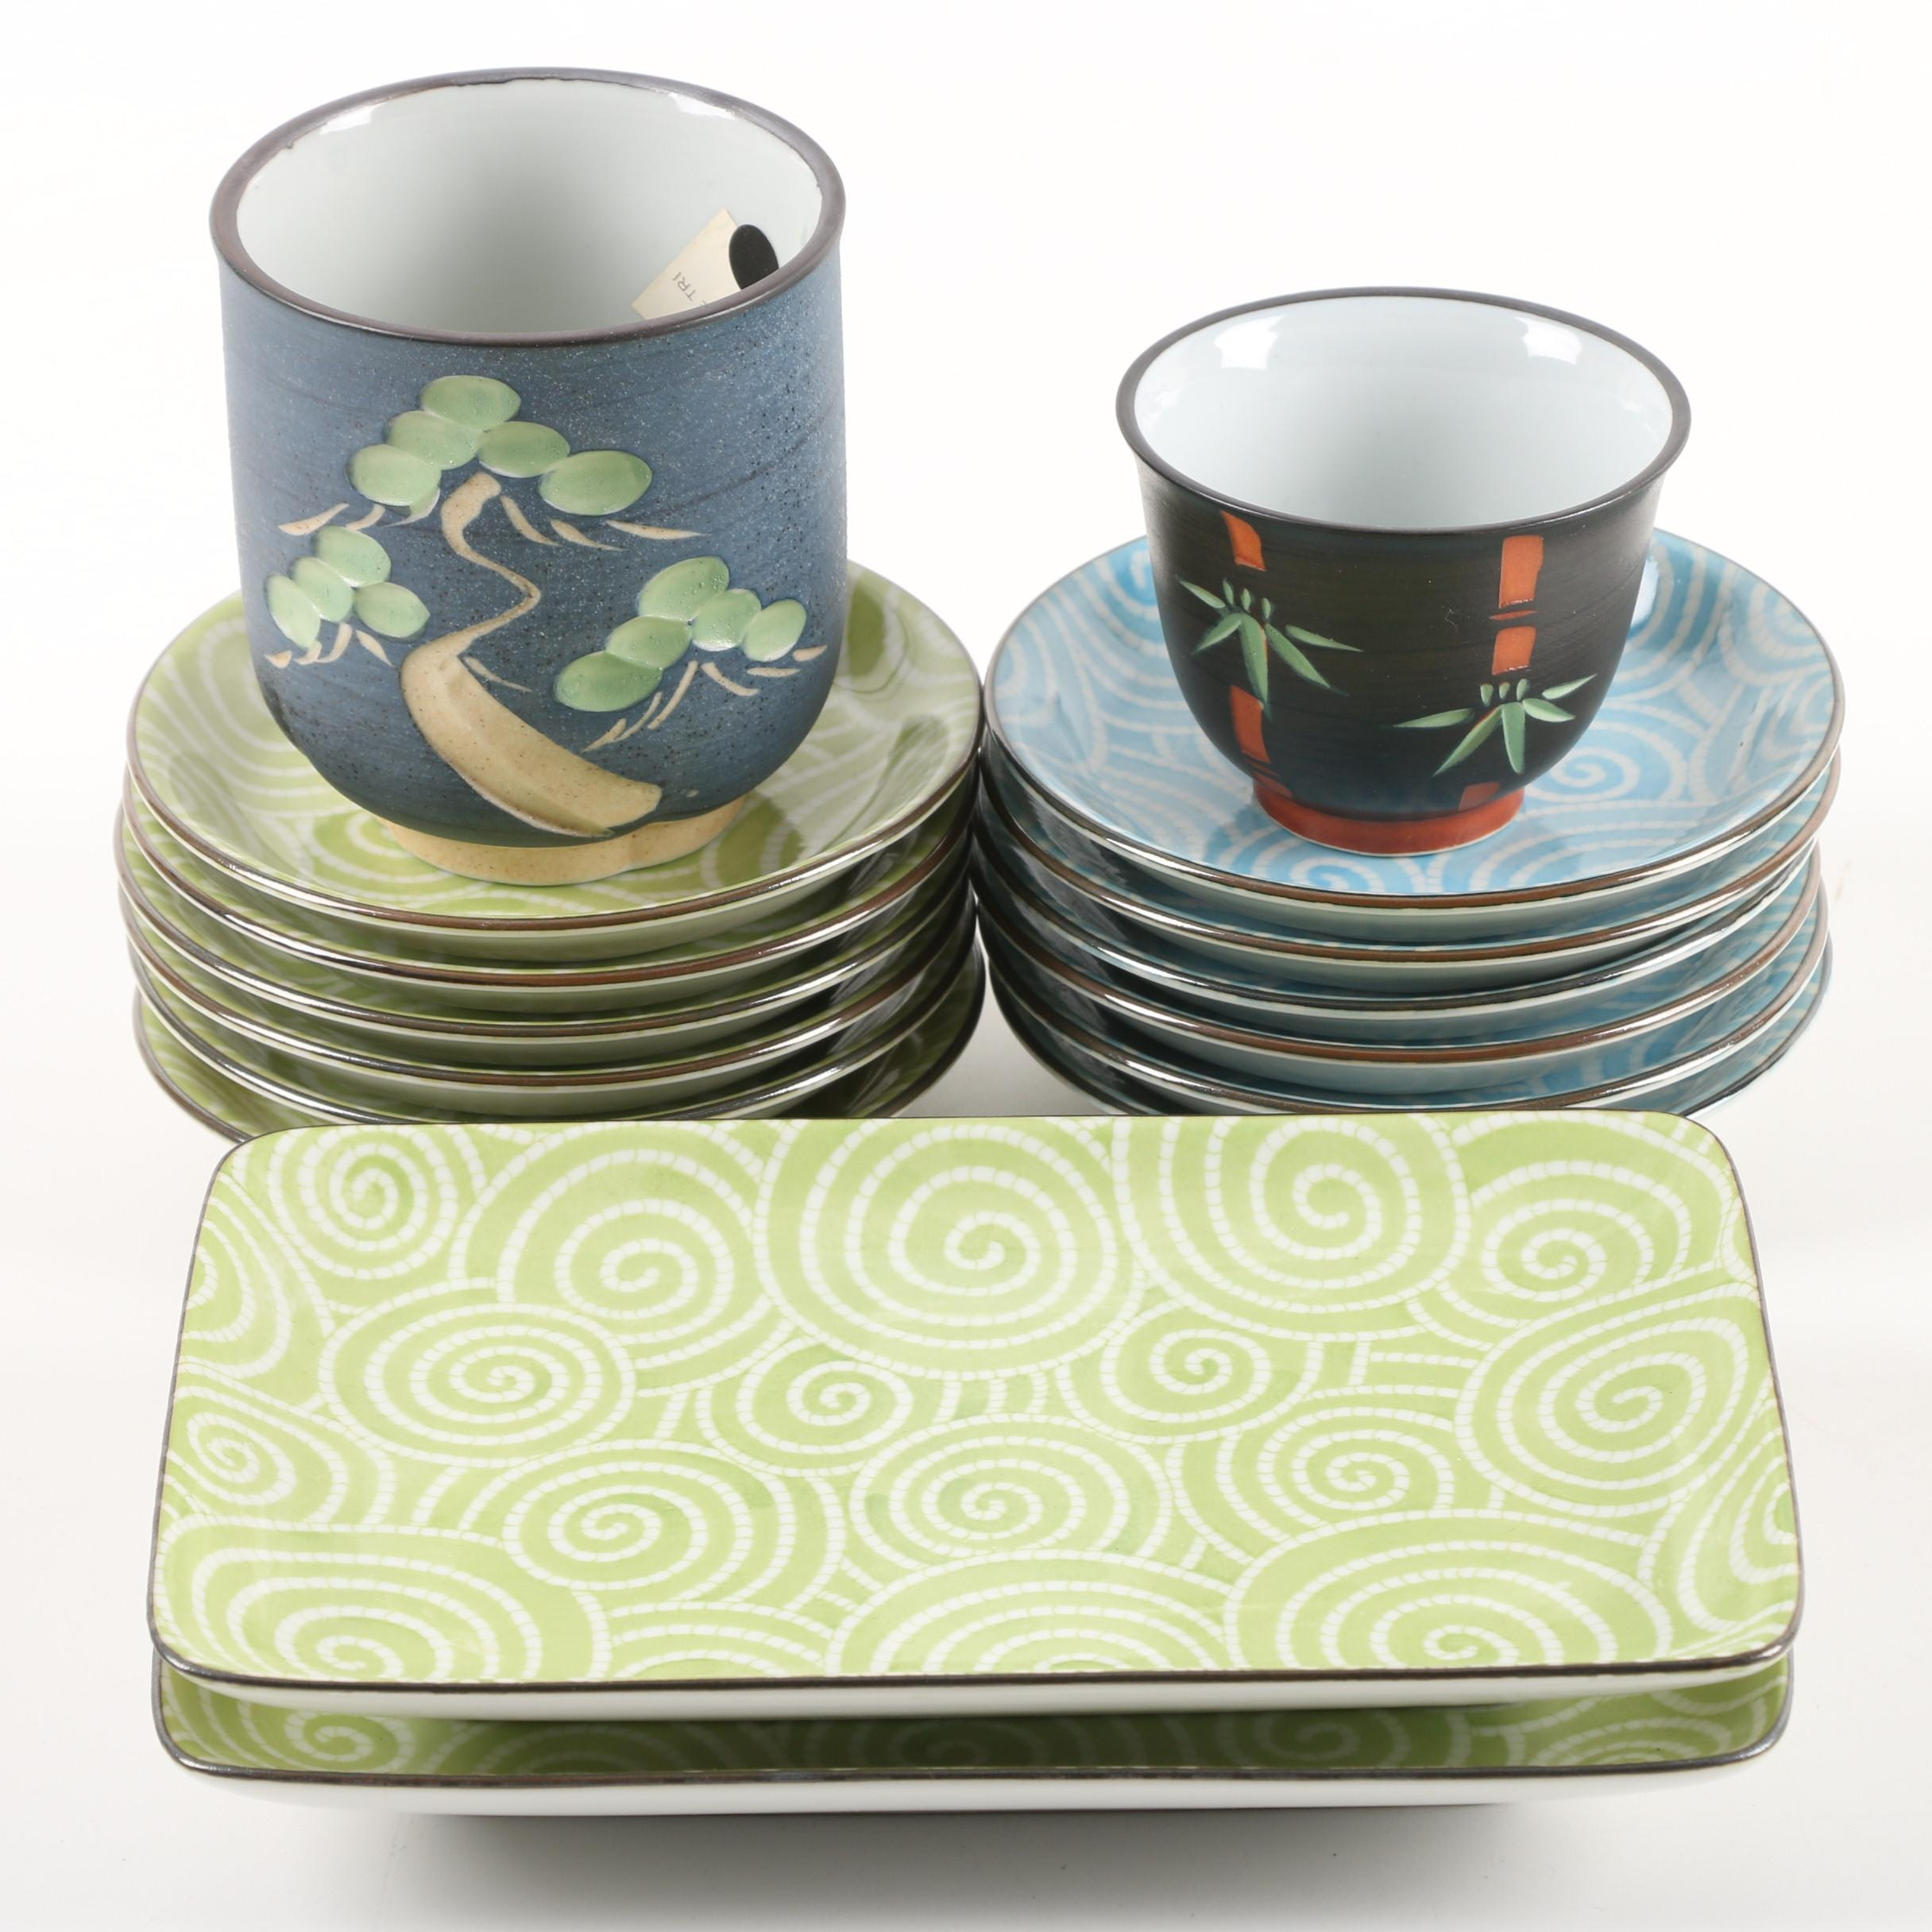 Kotobuki Ceramic Cups, Plates and Sushi Trays